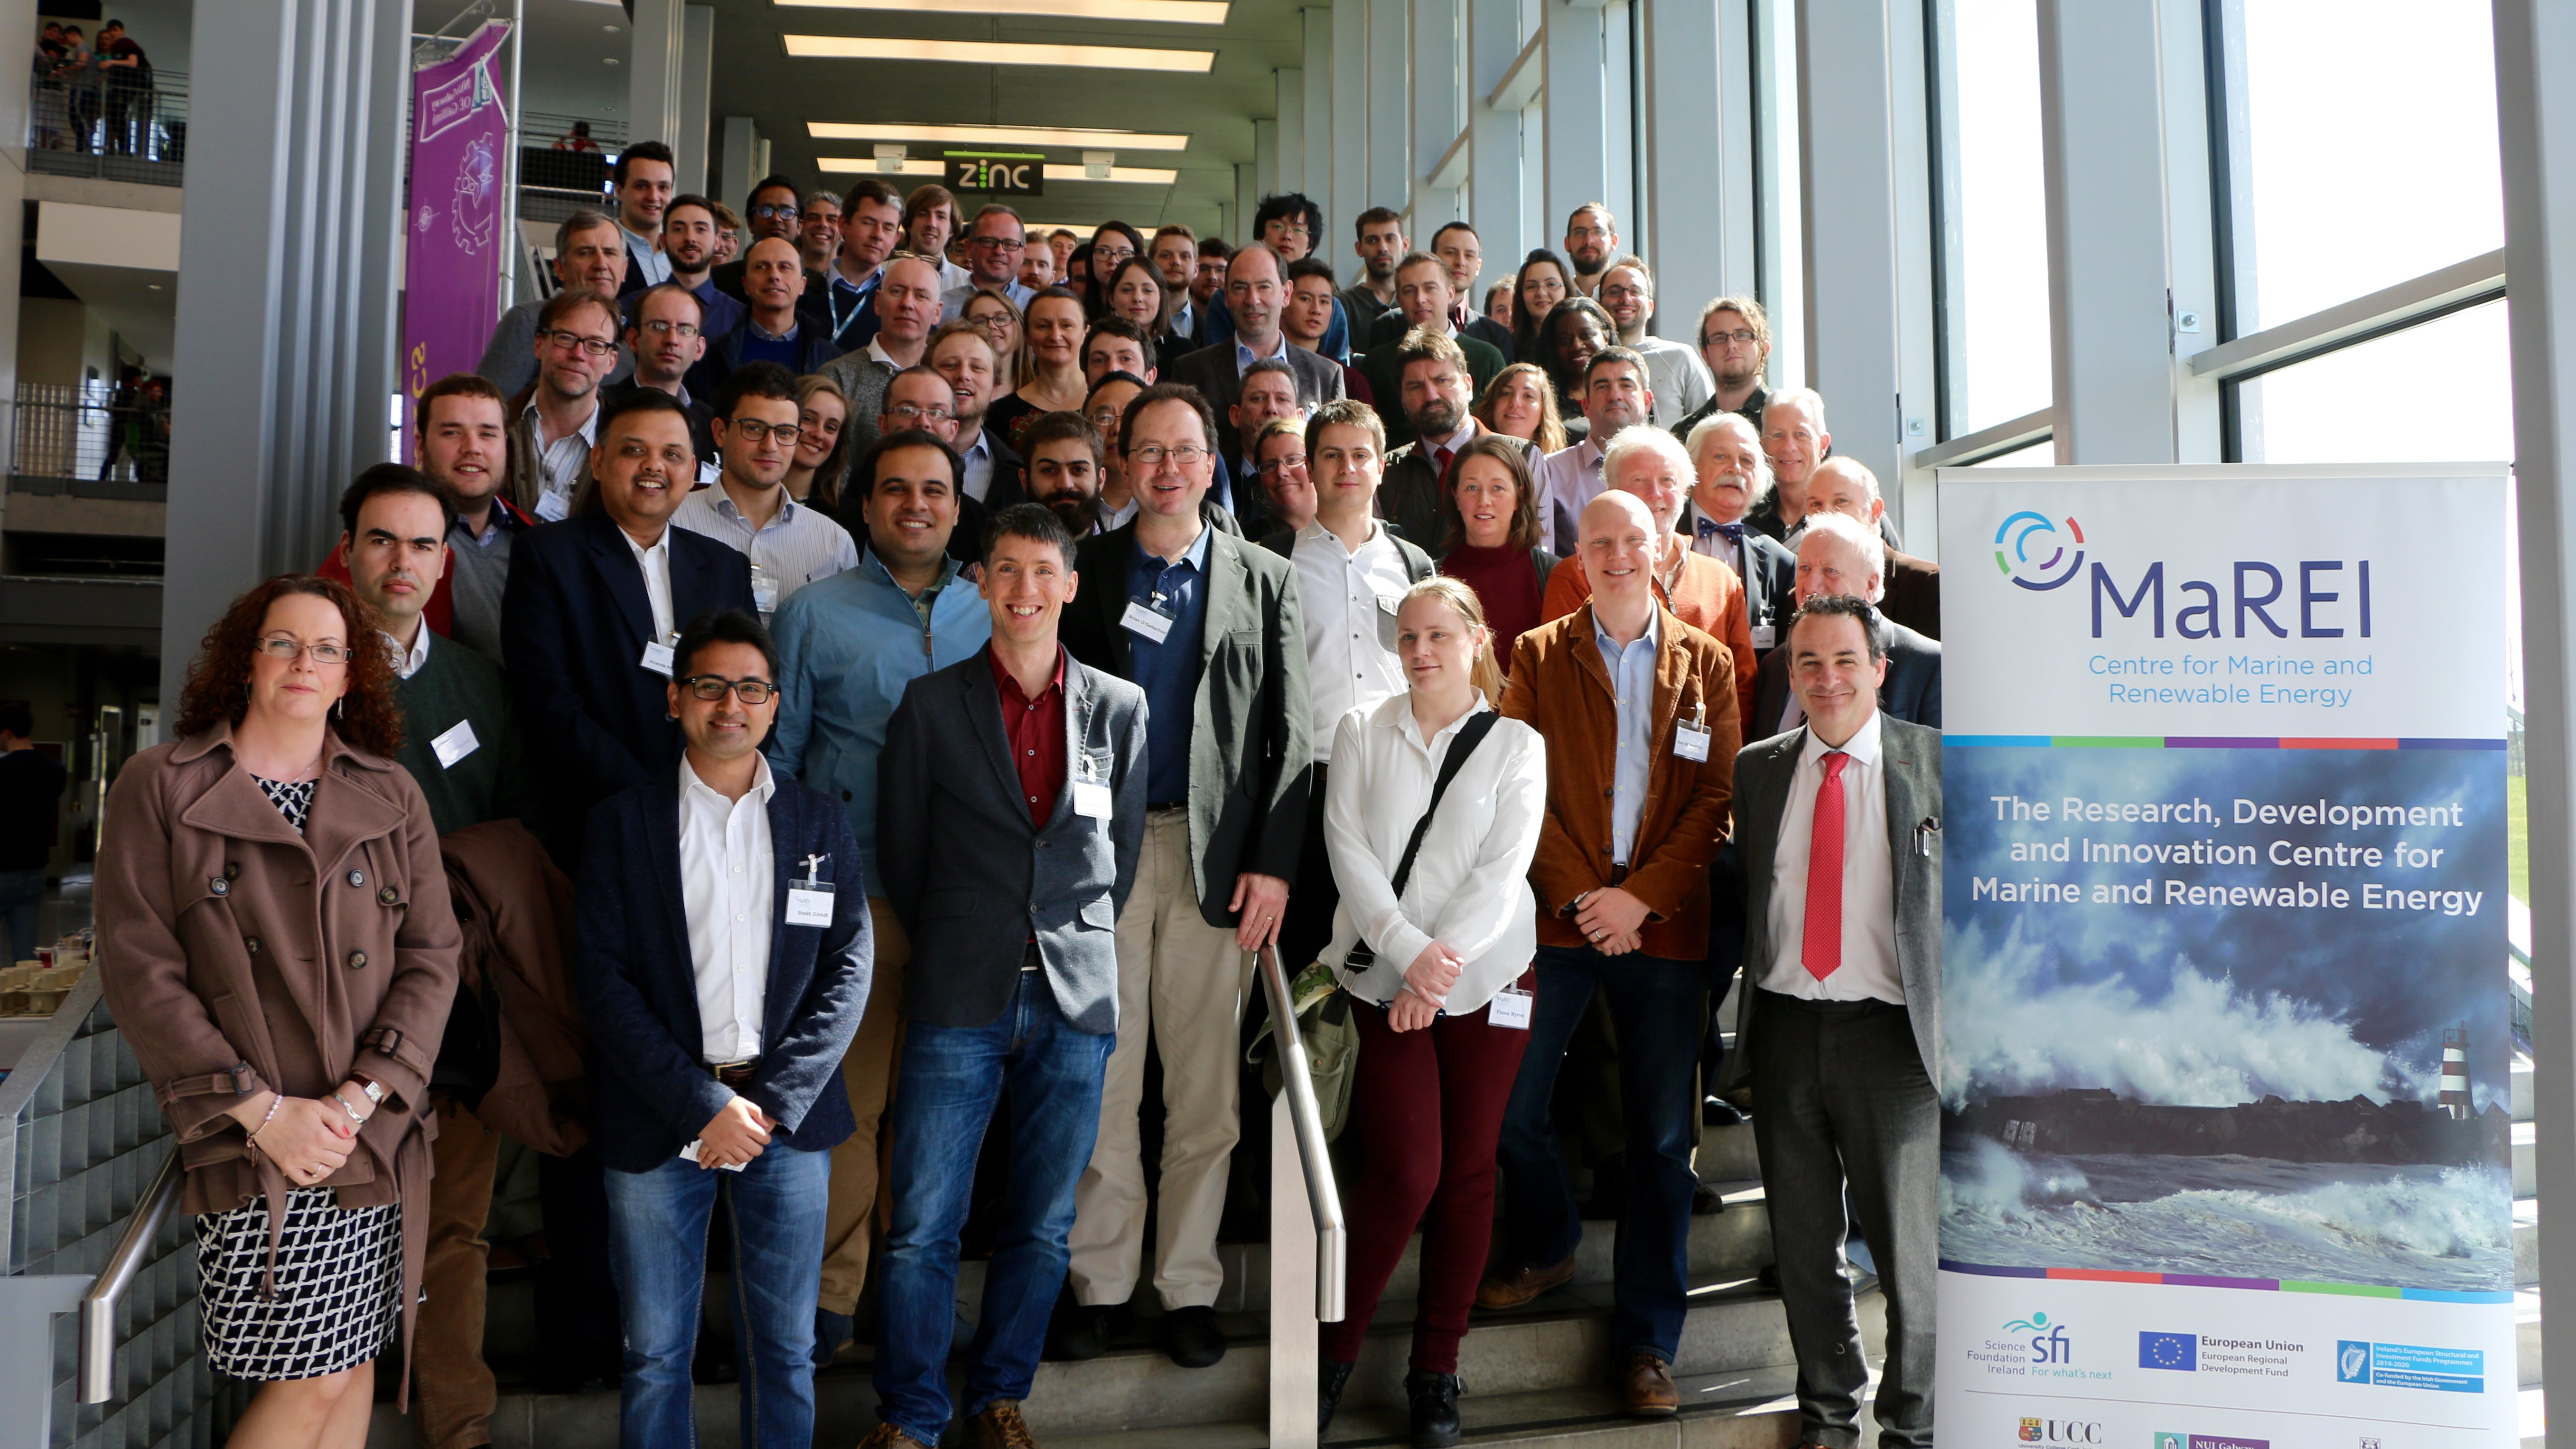 Nuig Hosts Symposium On Irish Research And Innovation In Marine And Renewable Energy